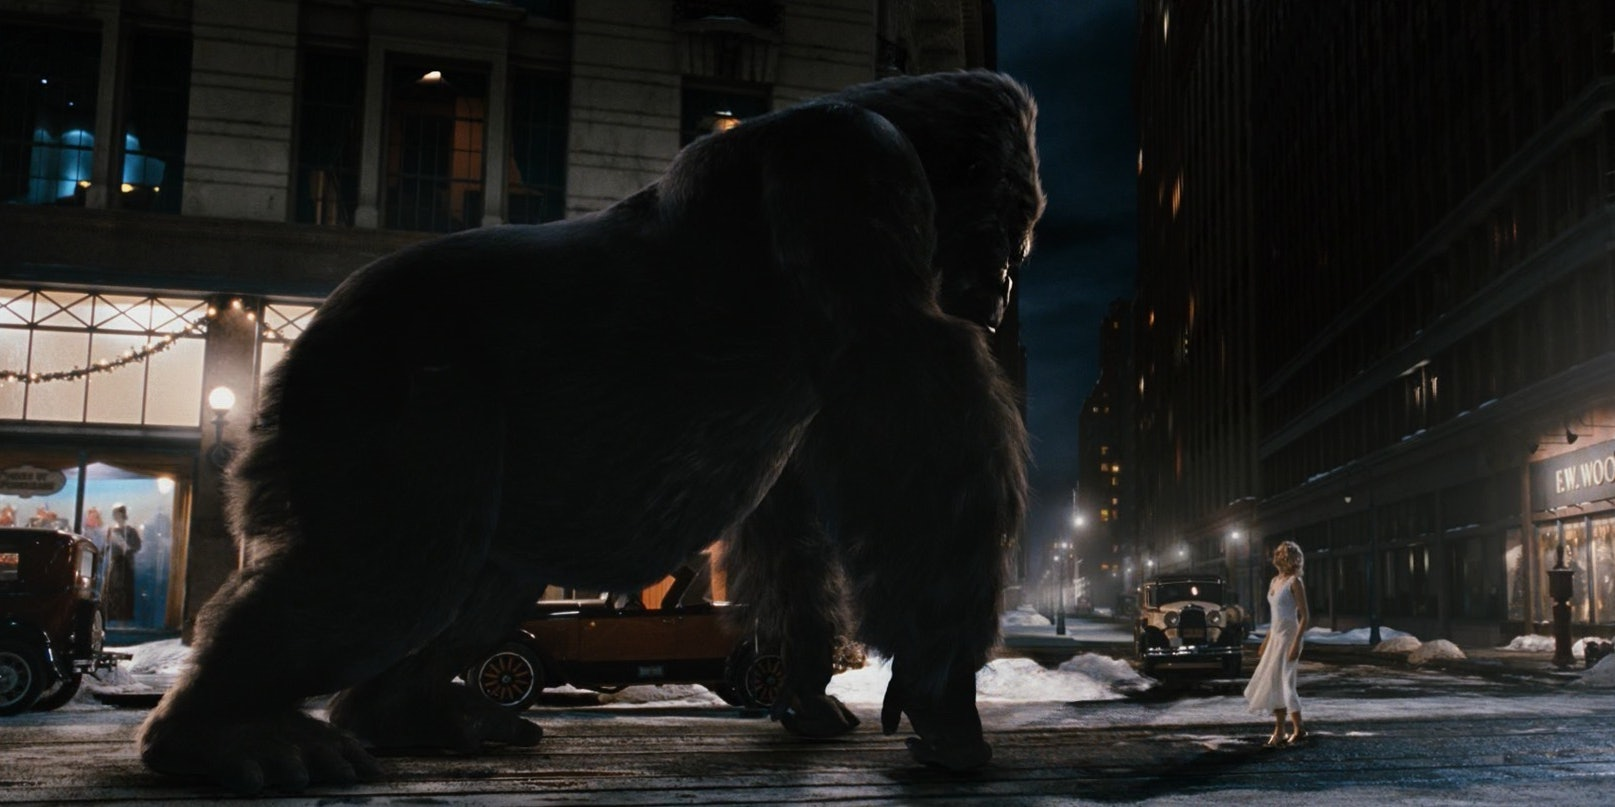 Weta Digital's completely CG King Kong, a stand-out digital character, and one for which the studio was awarded an Academy Award for Best Visual Effects.